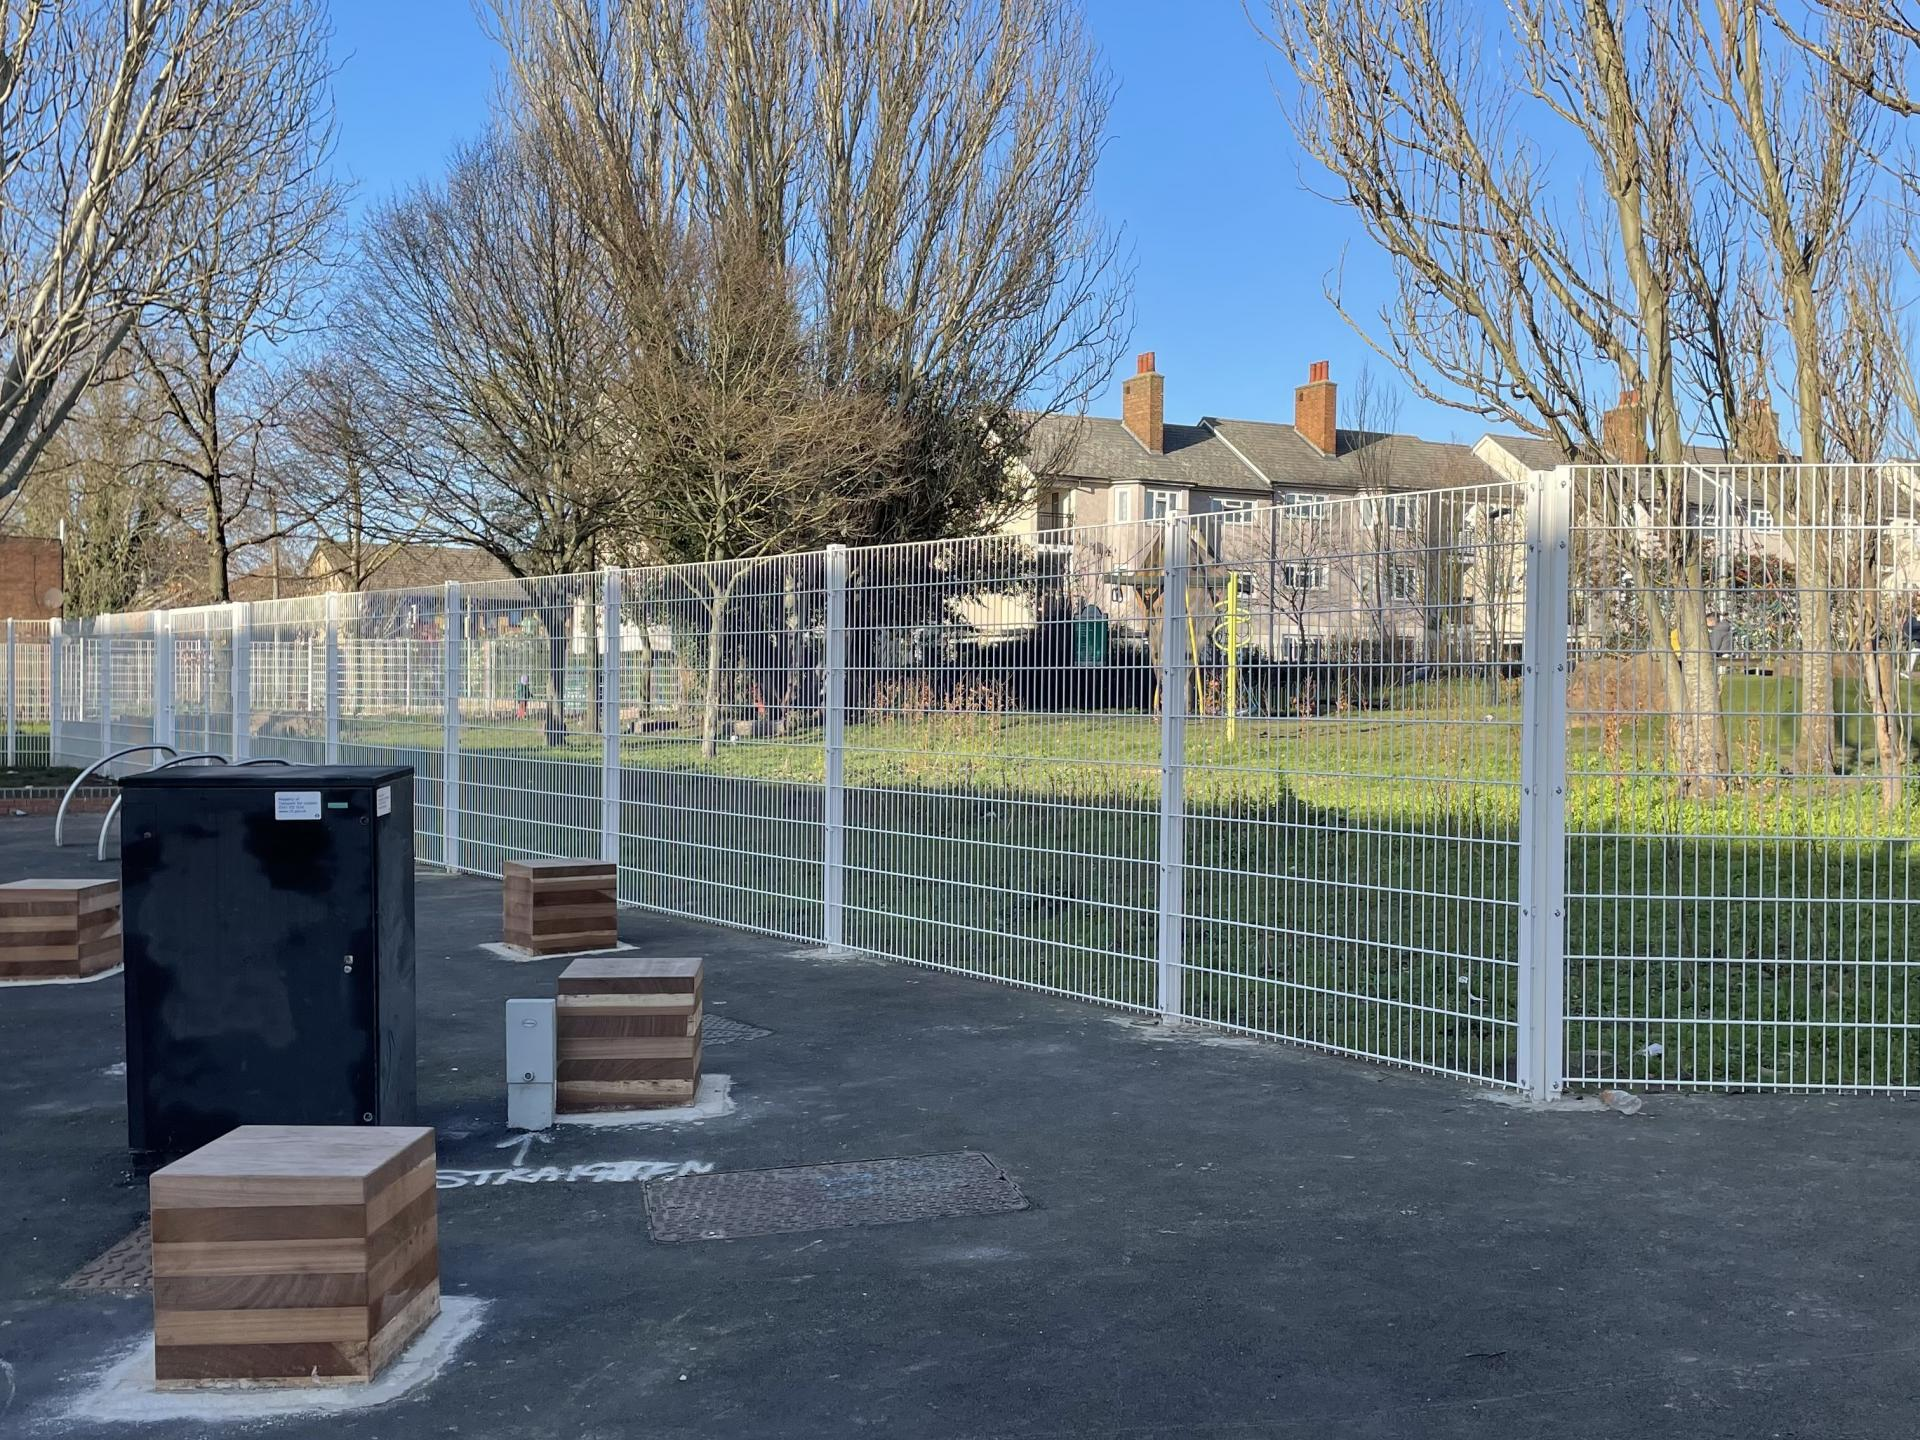 New fence and seating area, January 2021